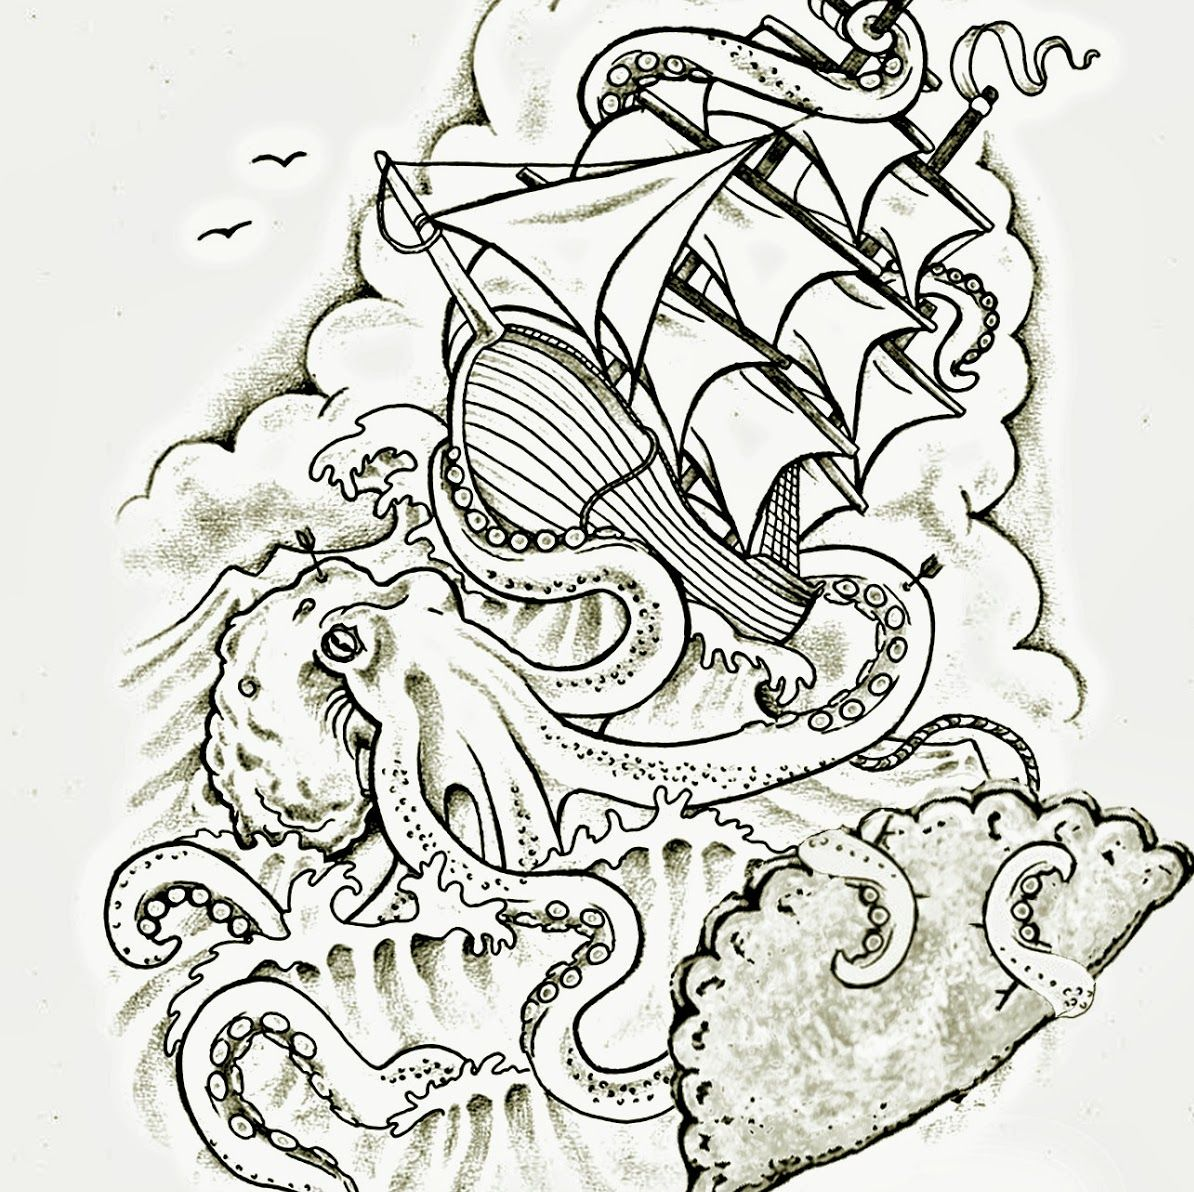 Octopus Shipwreck Drawing the octopus and...